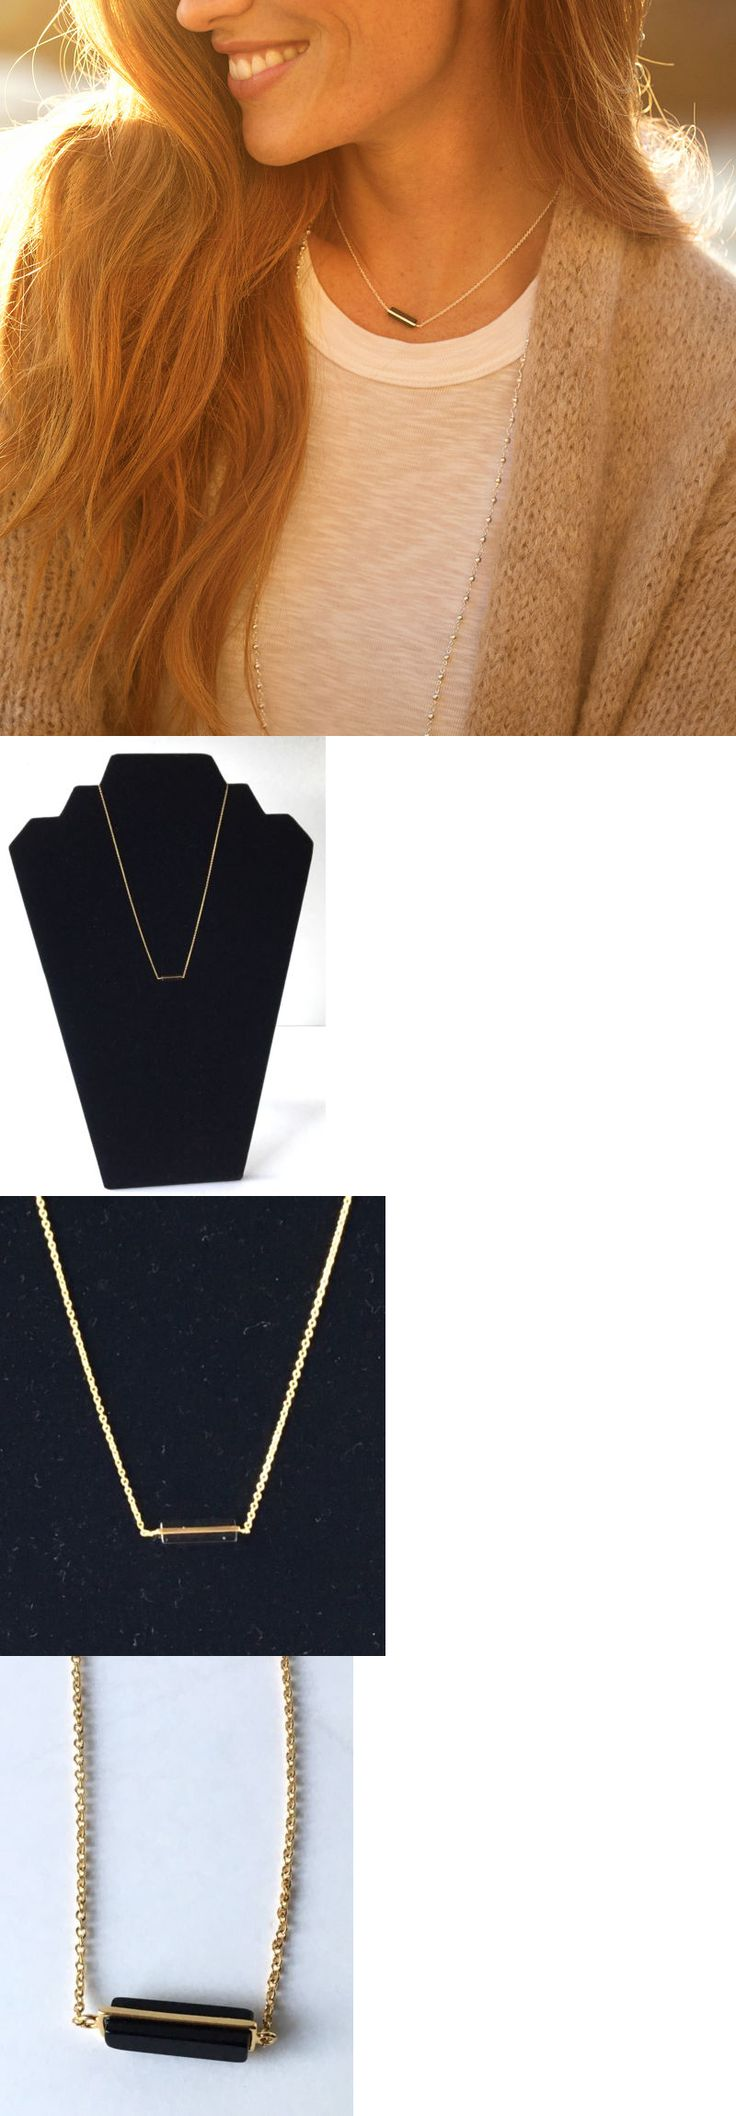 Necklaces and Pendants 155101: Gorjana Dez Bar Pendant Necklace 18K Gold Plated Black Obsidian Stone New -> BUY IT NOW ONLY: $34.2 on eBay!